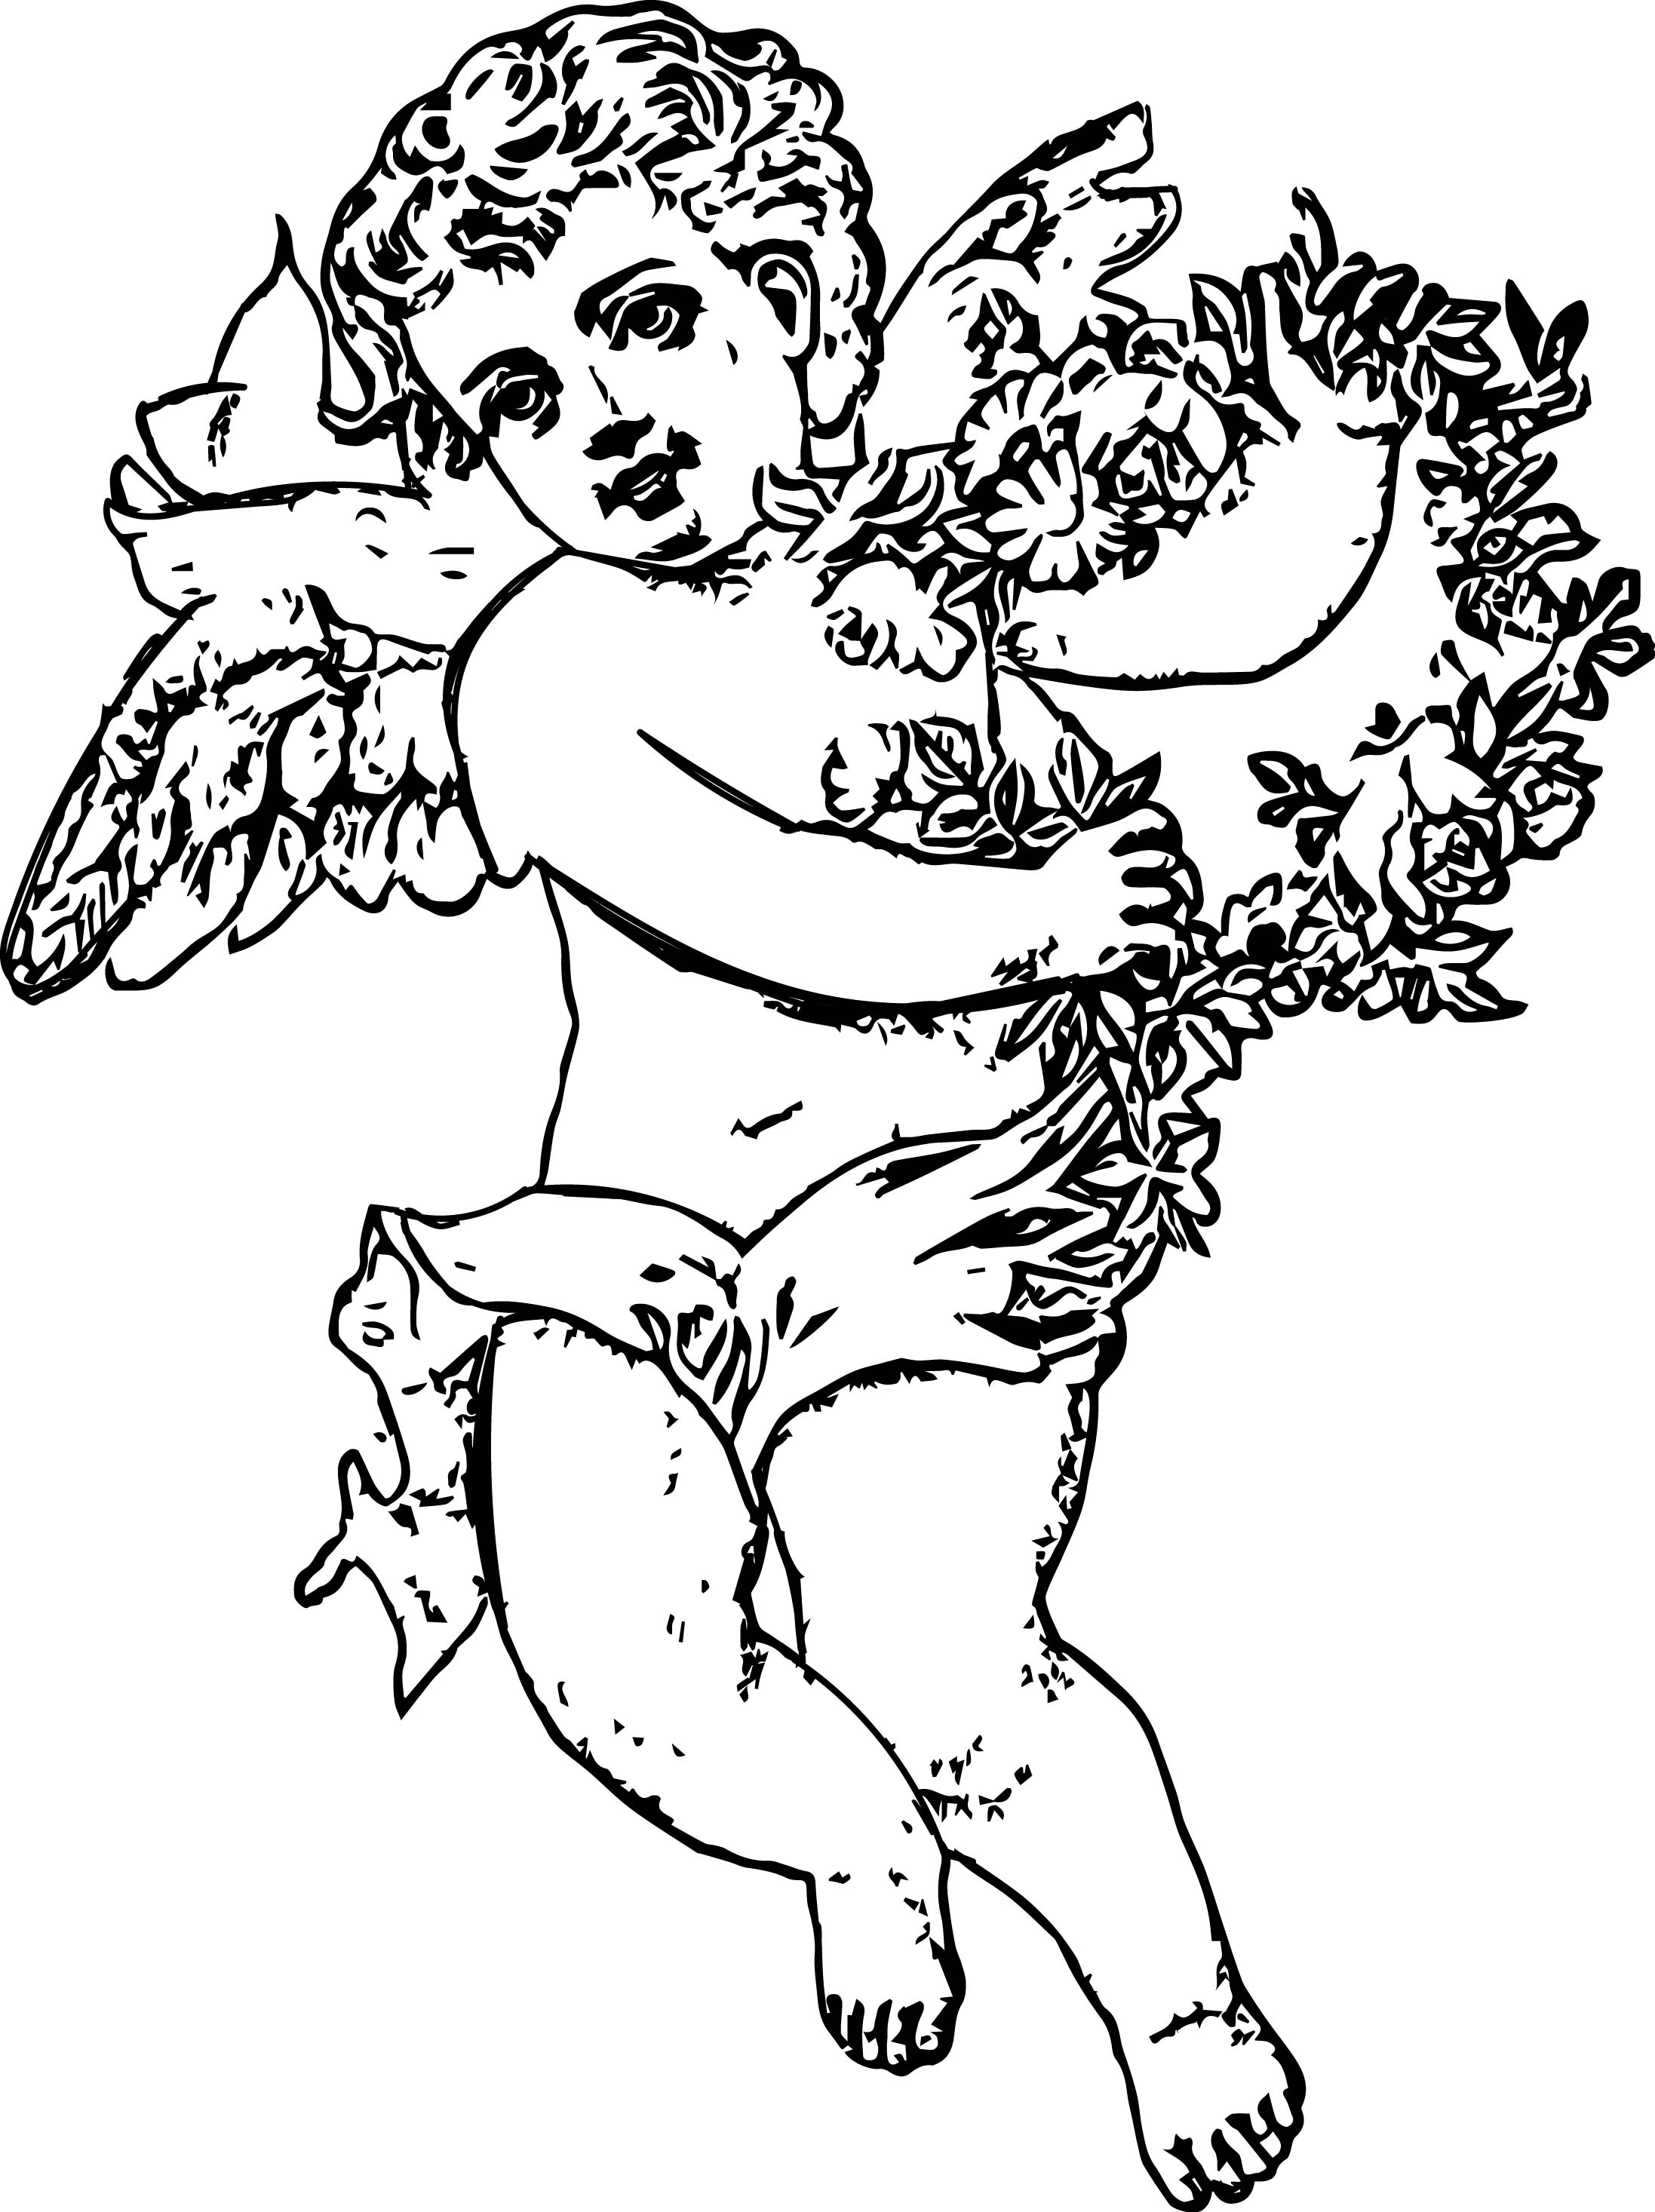 Angel Sketch Coloring Page